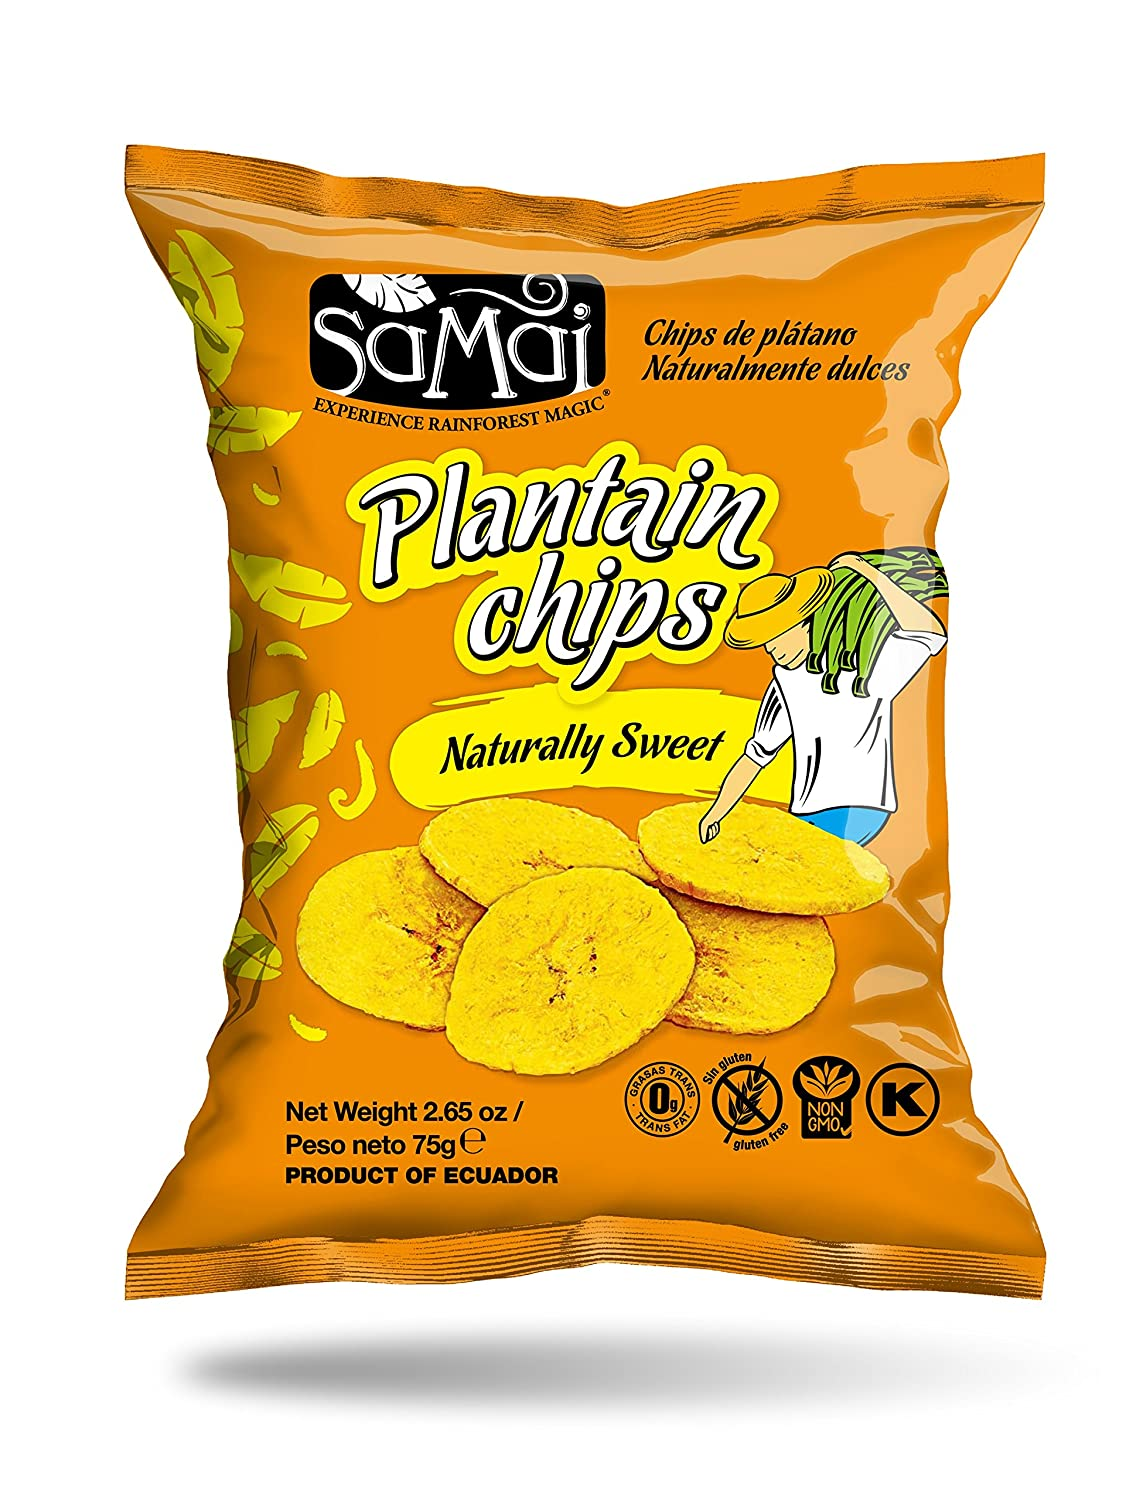 Amazon.com : Samai Plantain Chips Sea Salt 15 oz (Pack of 12) : Grocery & Gourmet Food